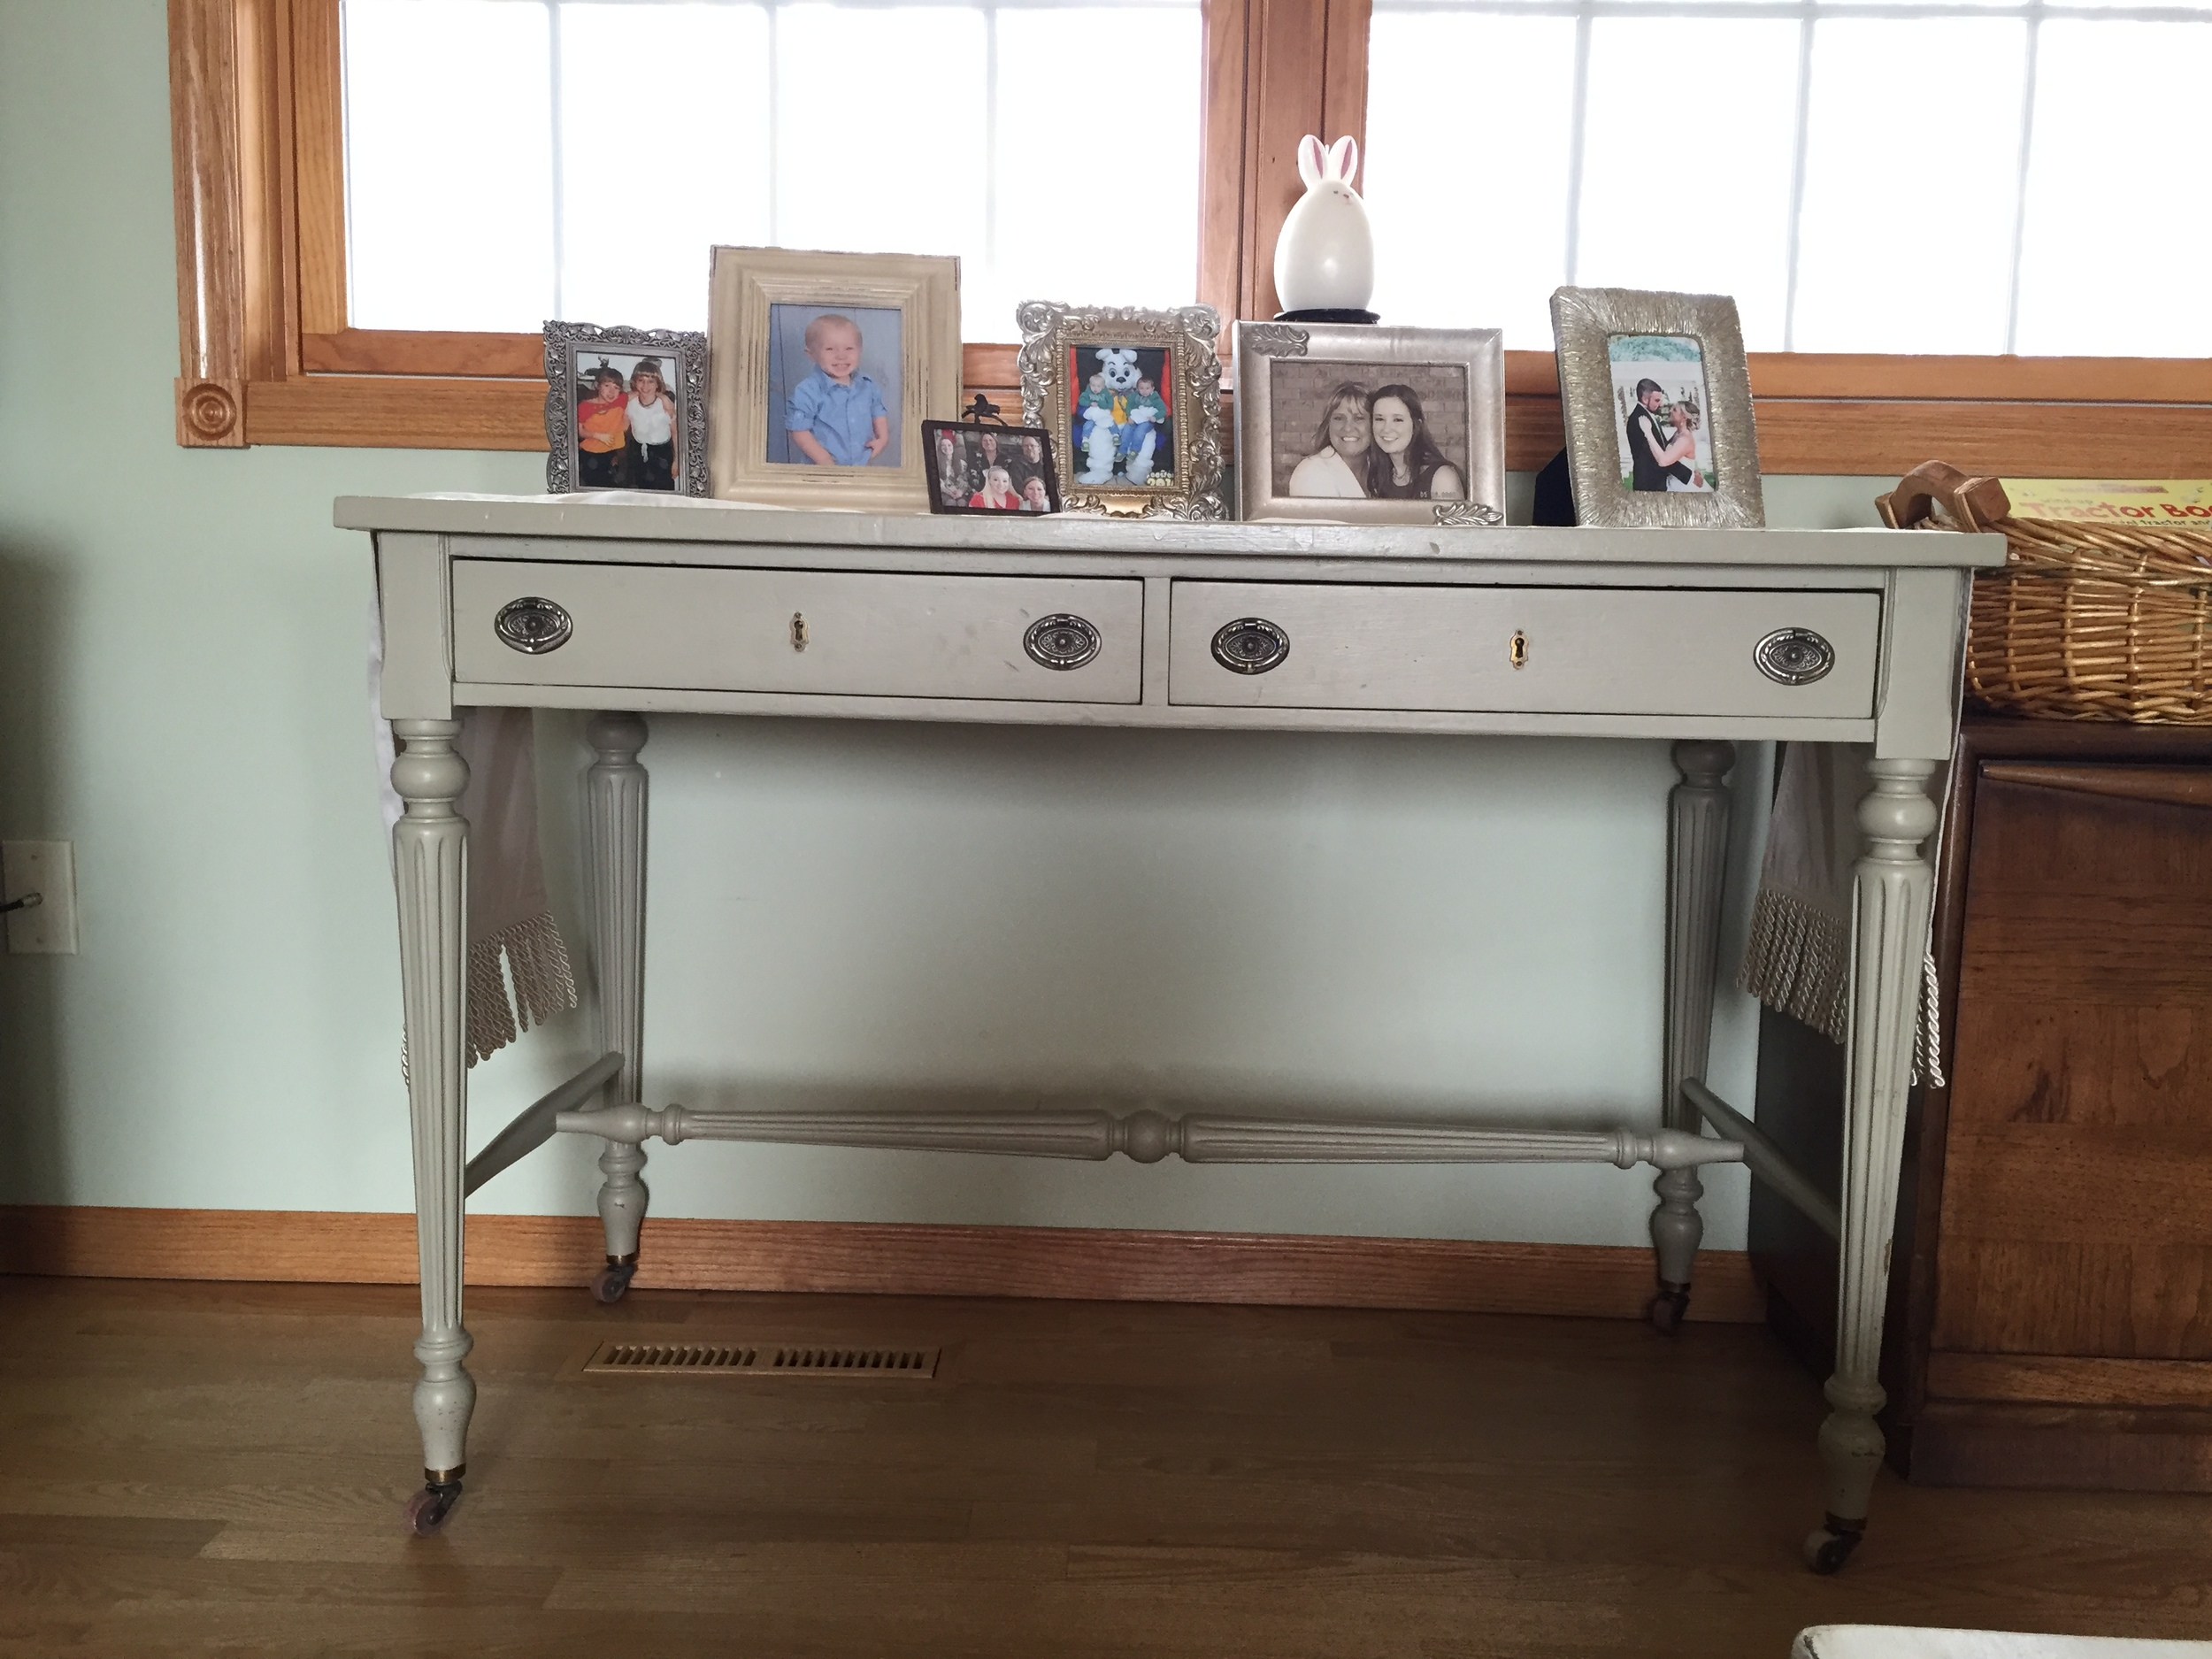 An antique library table in Julie's home displays family photos.